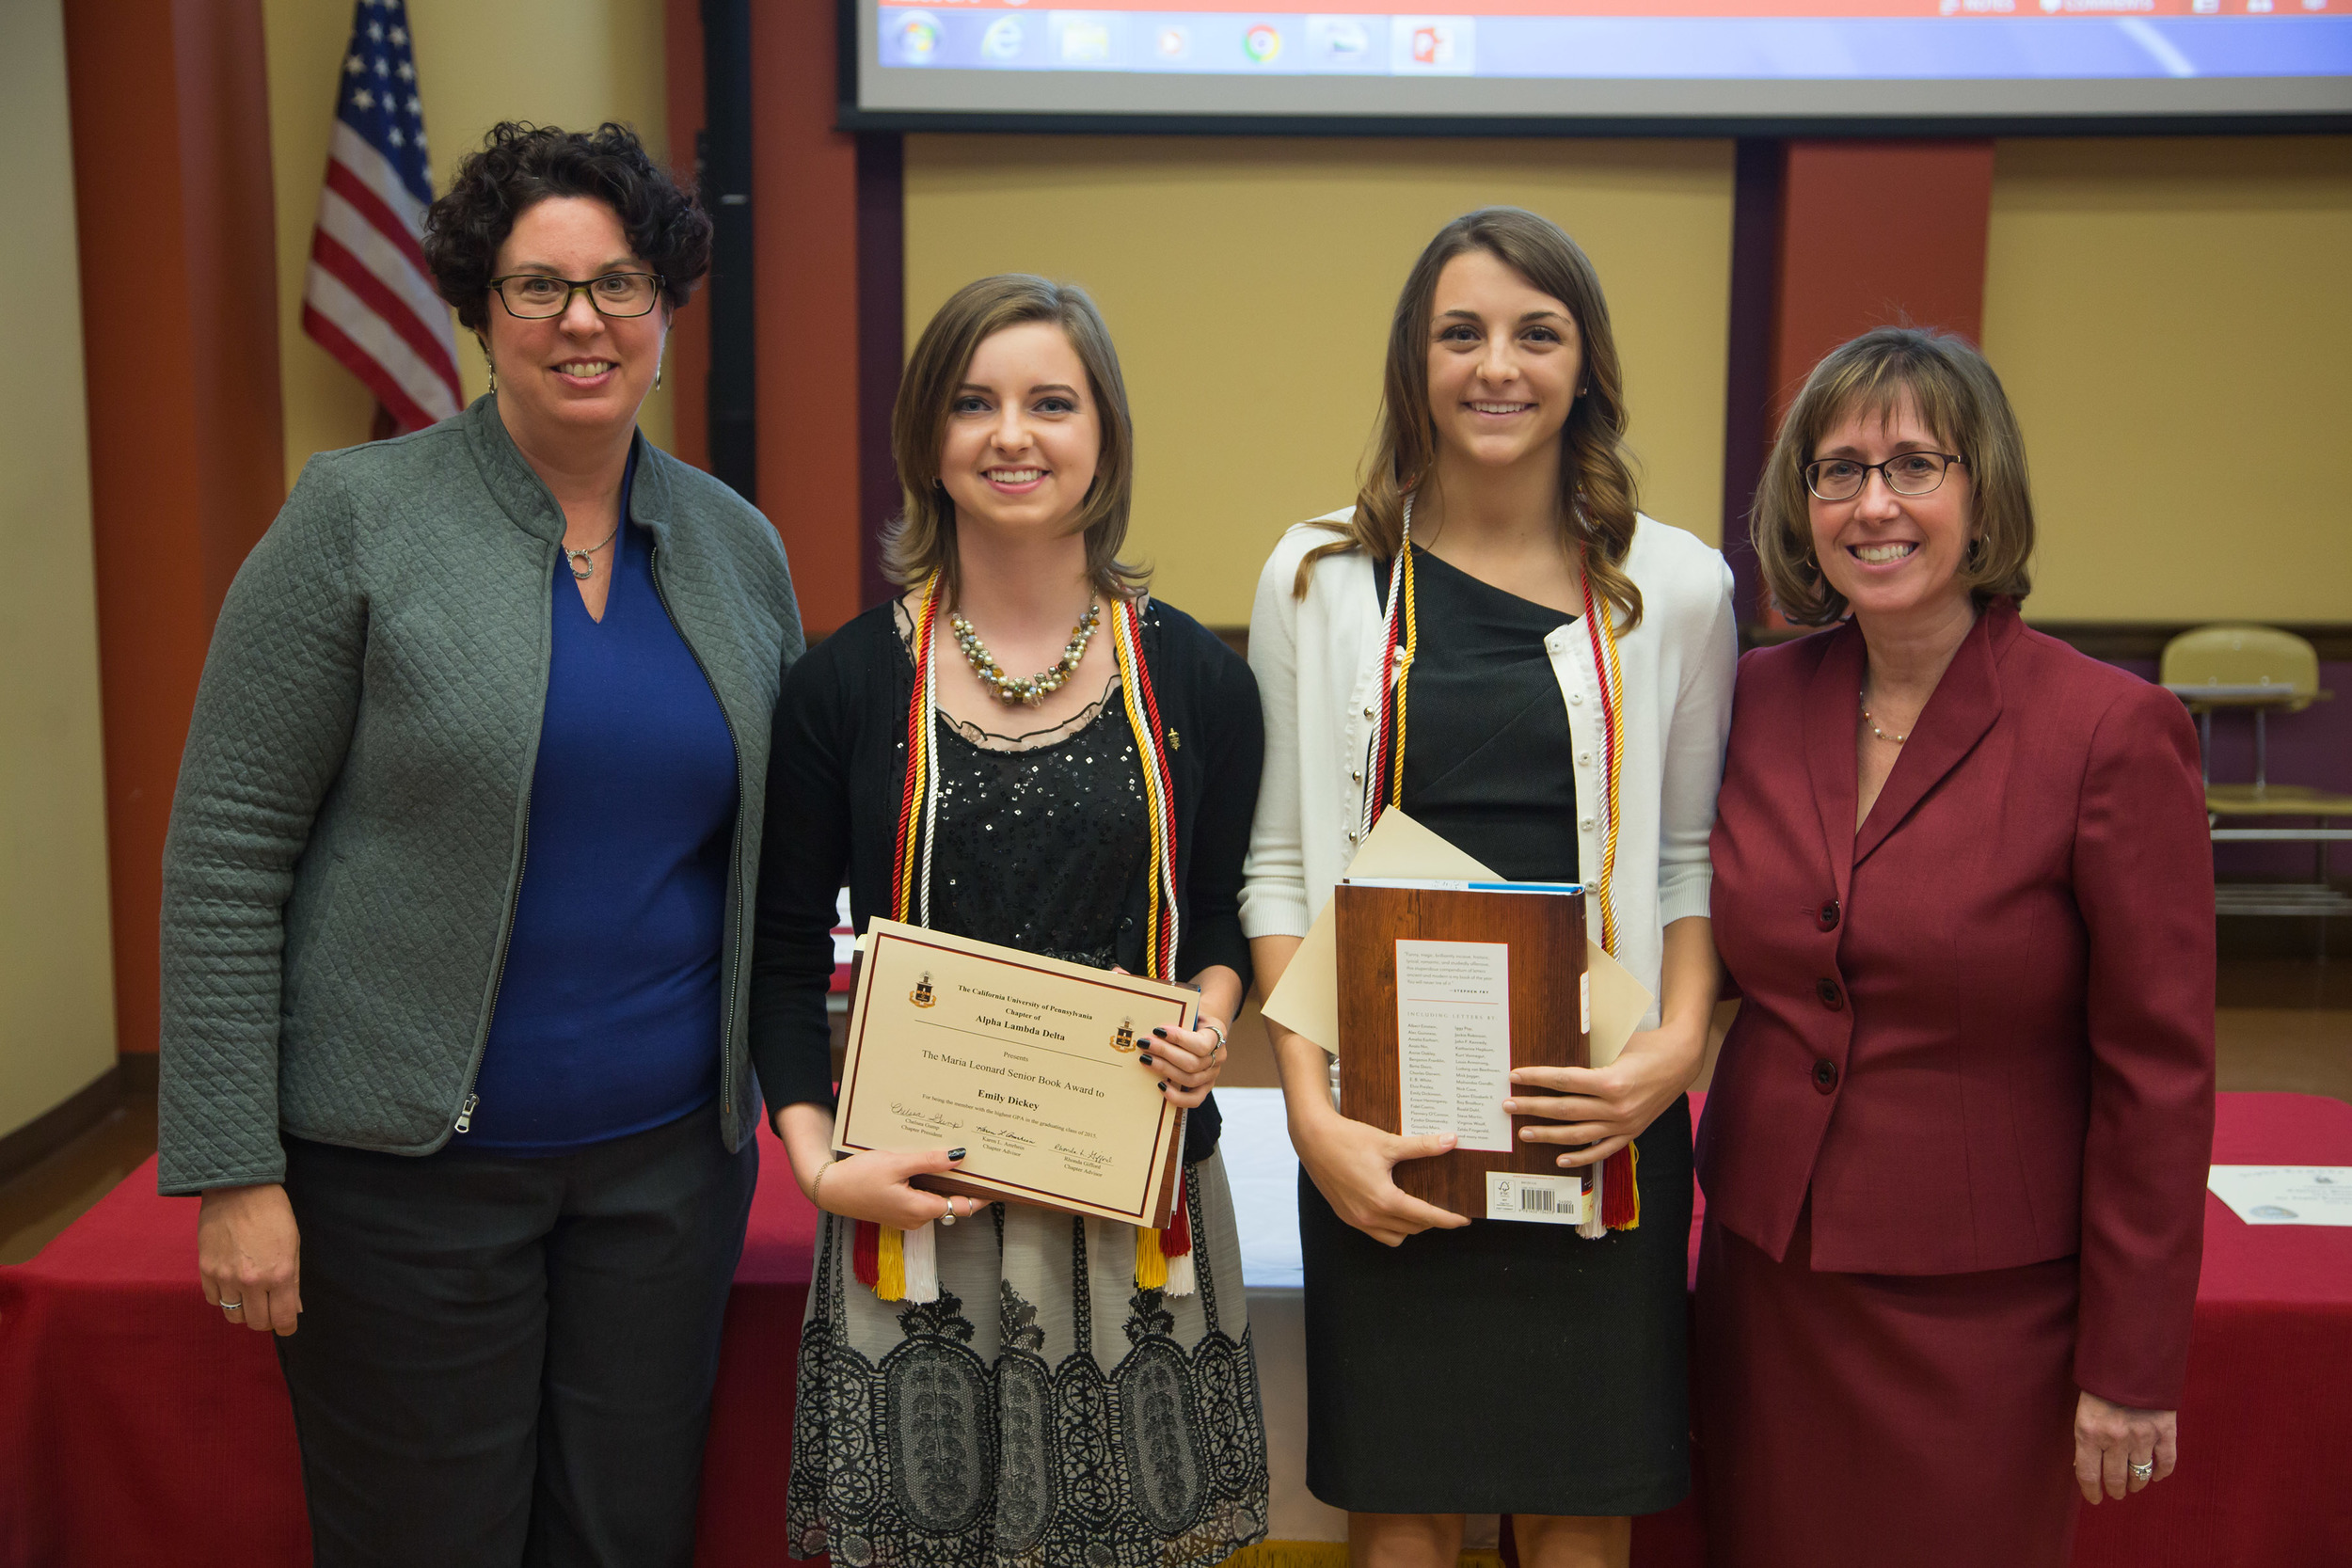 california university of pennsylvania advisors presenting ald members with senior awards